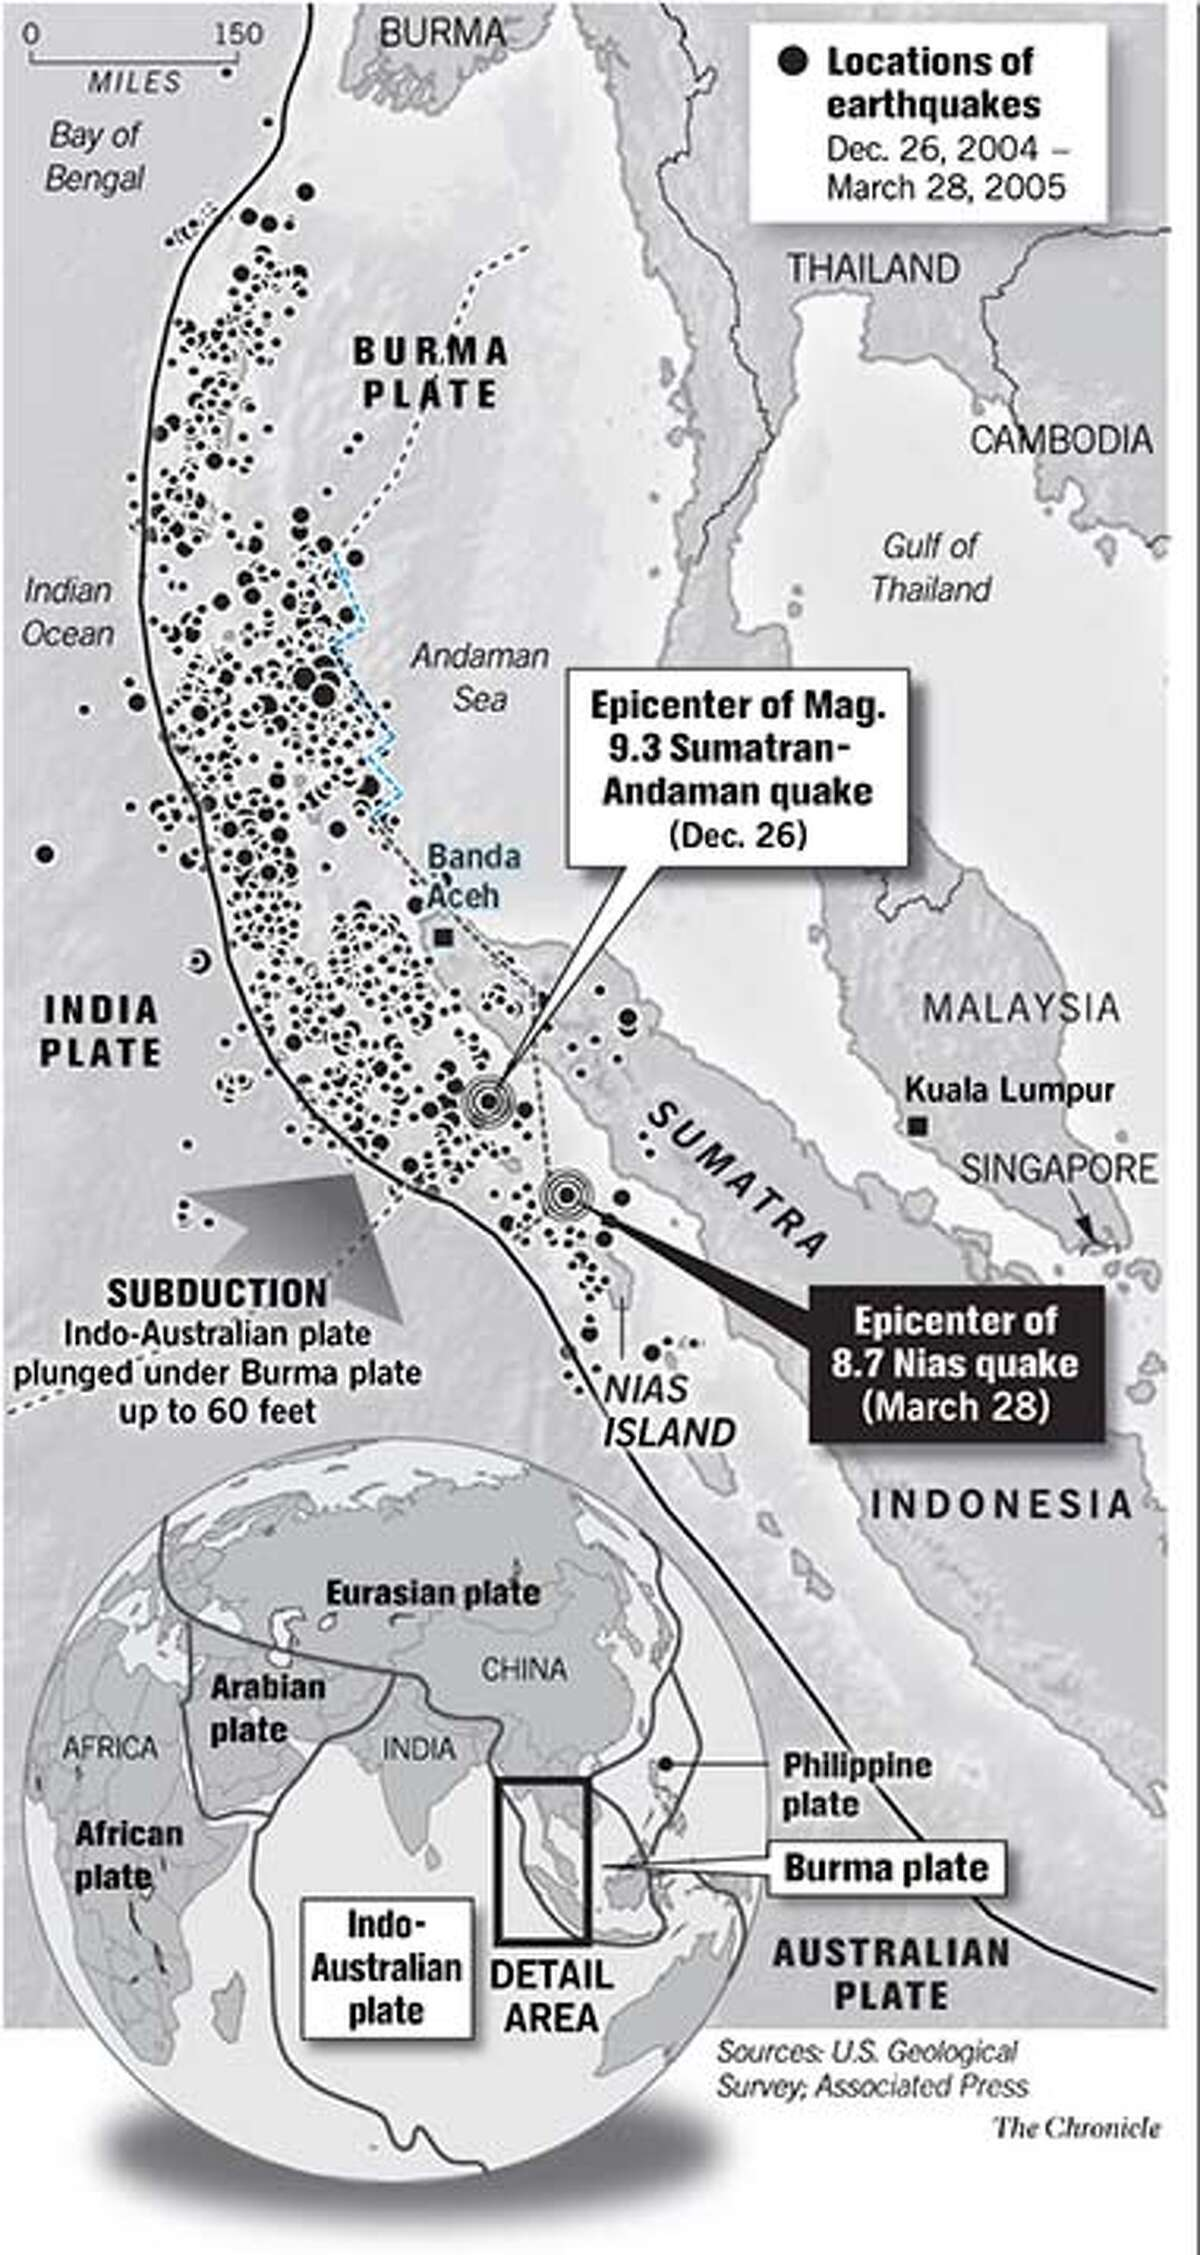 Locations of earthquakes from December 26, 2004 to March 28, 2005. Chronicle Graphic